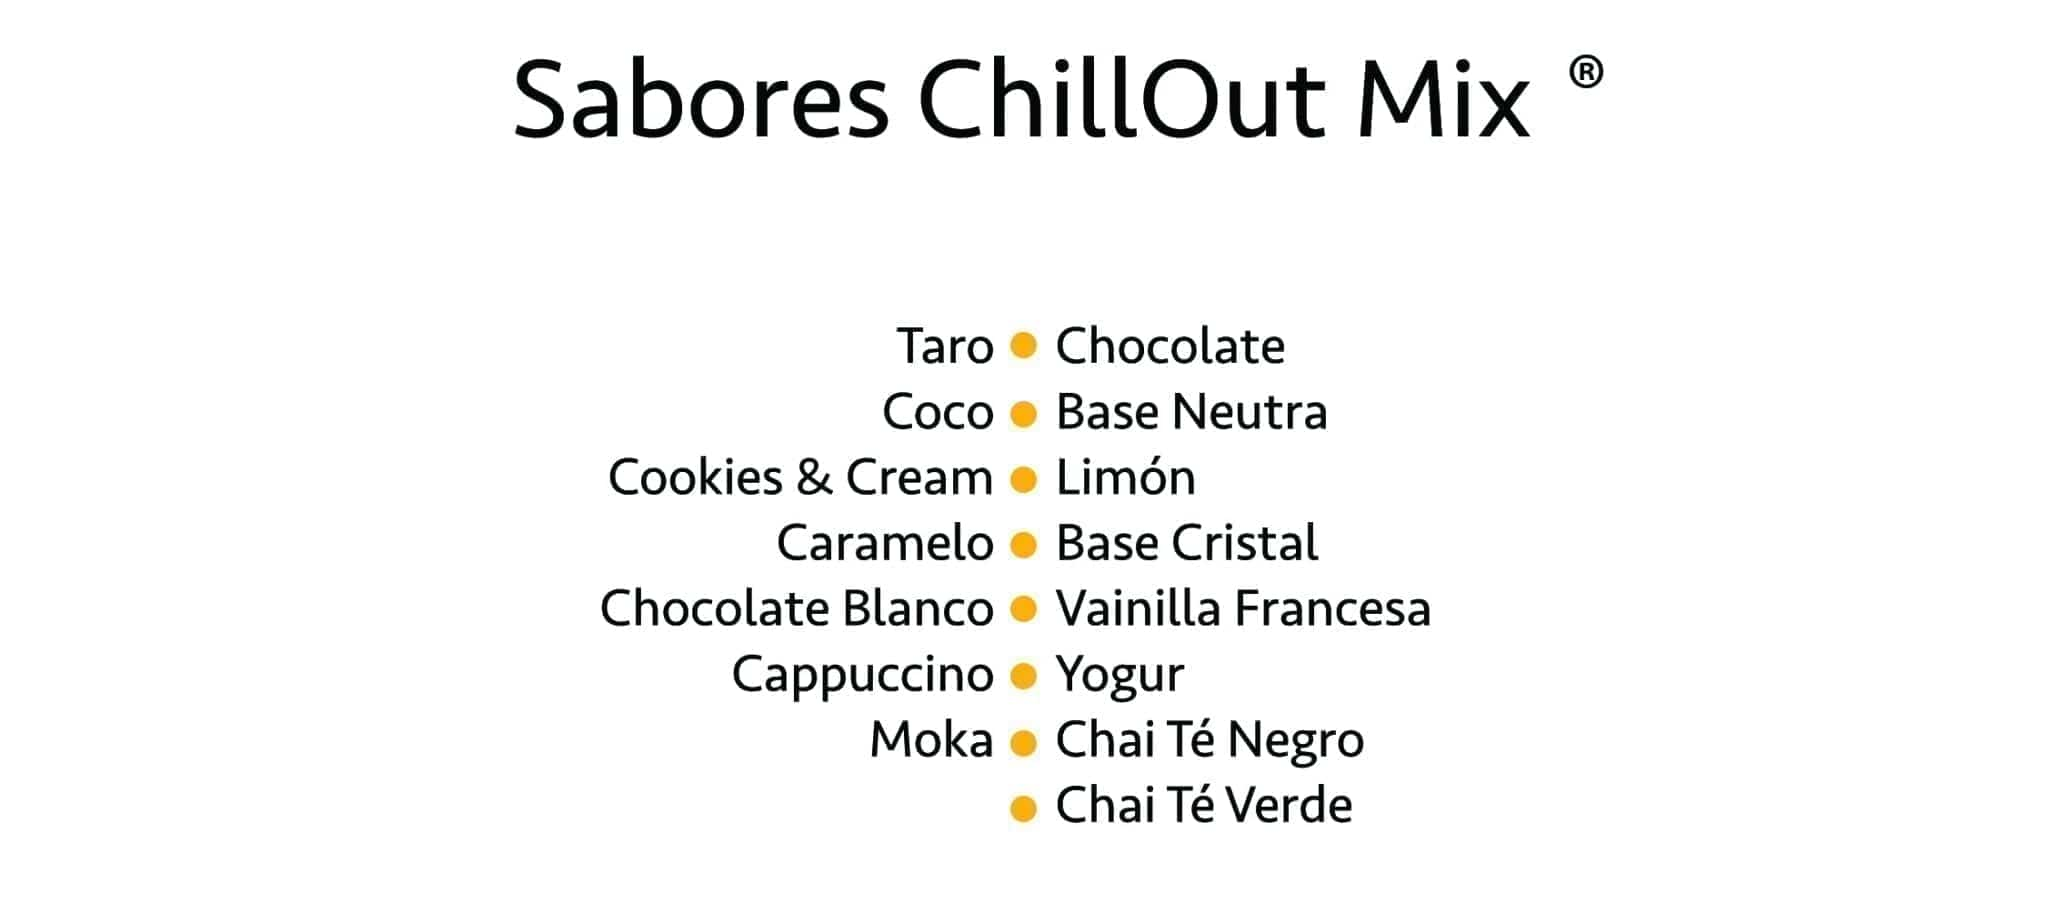 Sabores ChillOut Mix